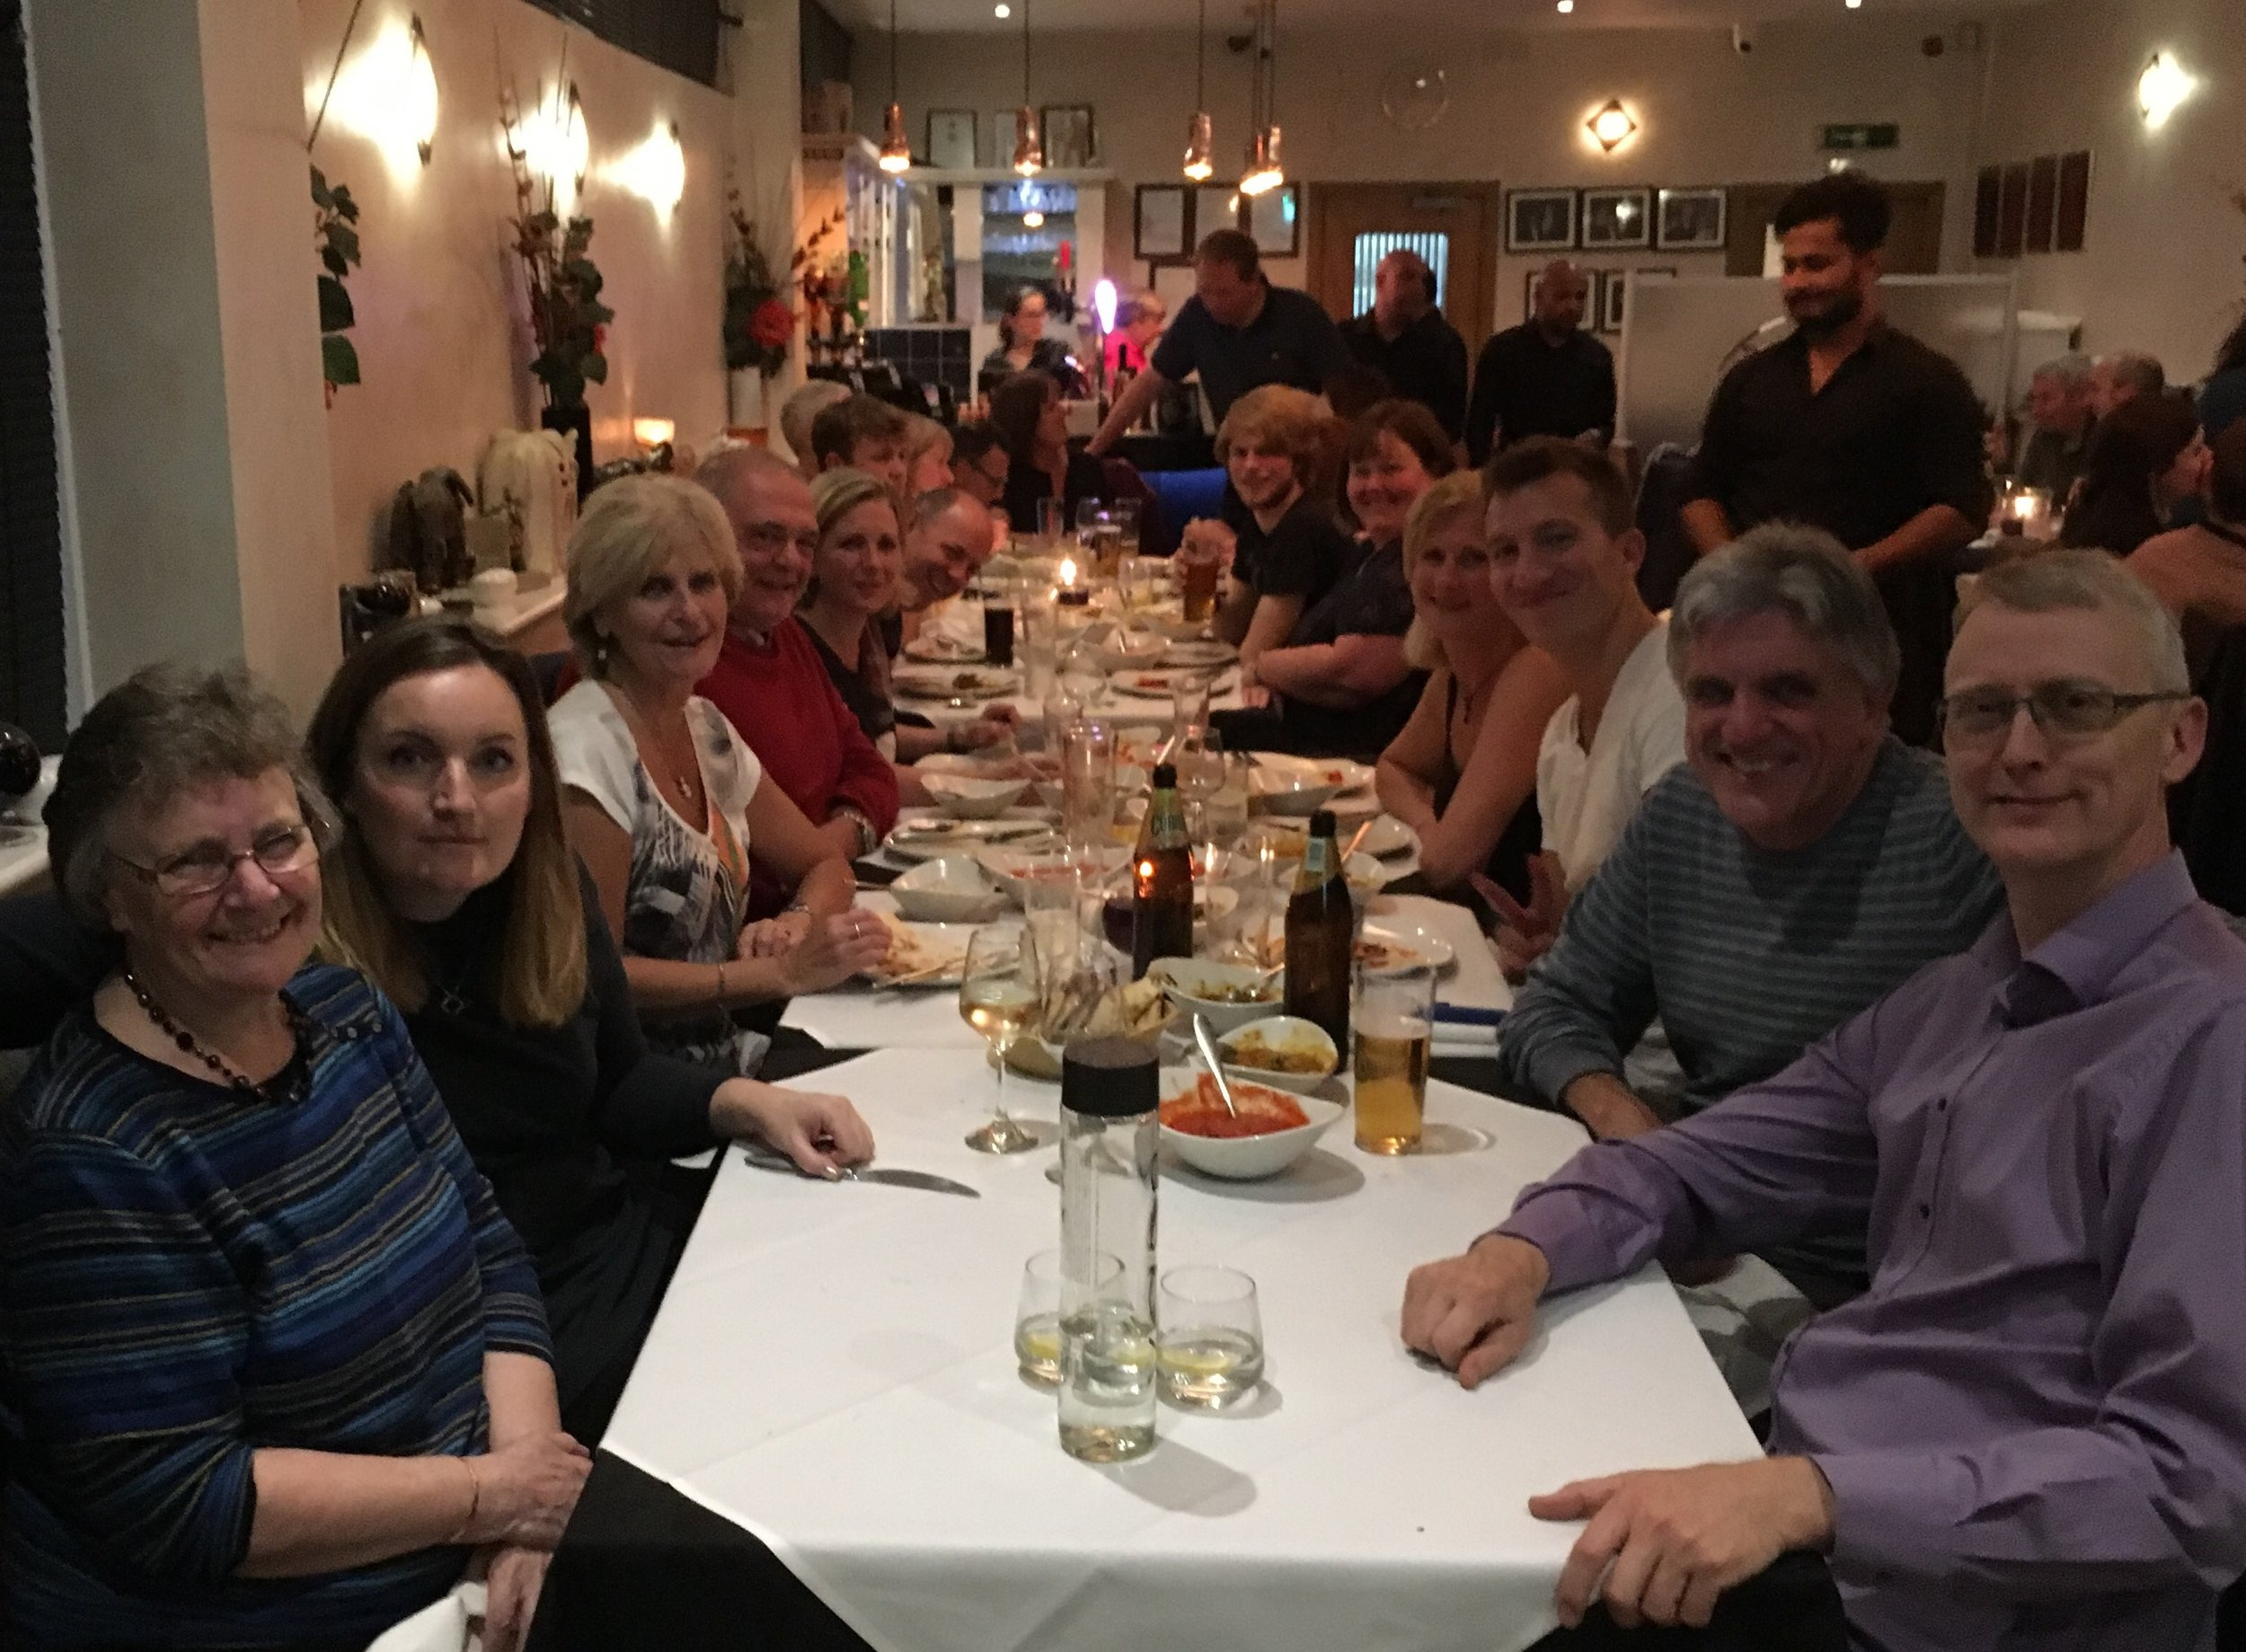 curry night mum oct 2017.jpg